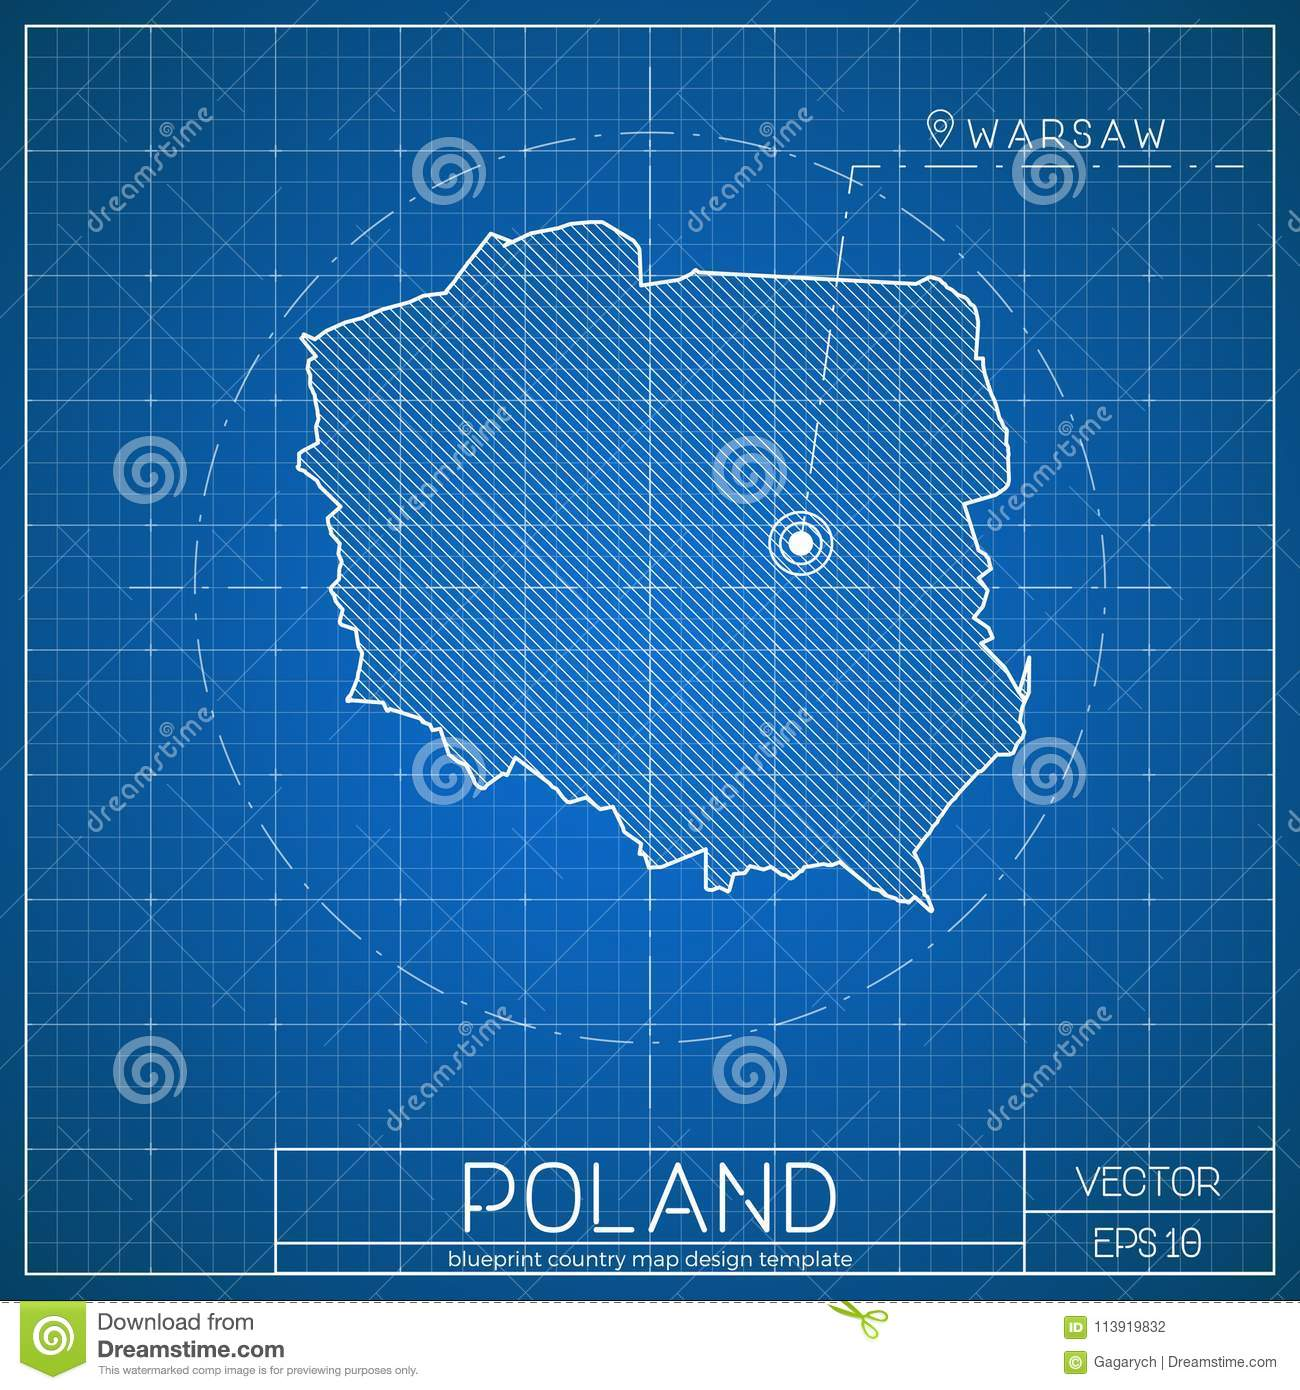 Capital Of Poland Map.Poland Blueprint Map Template With Capital City Stock Vector